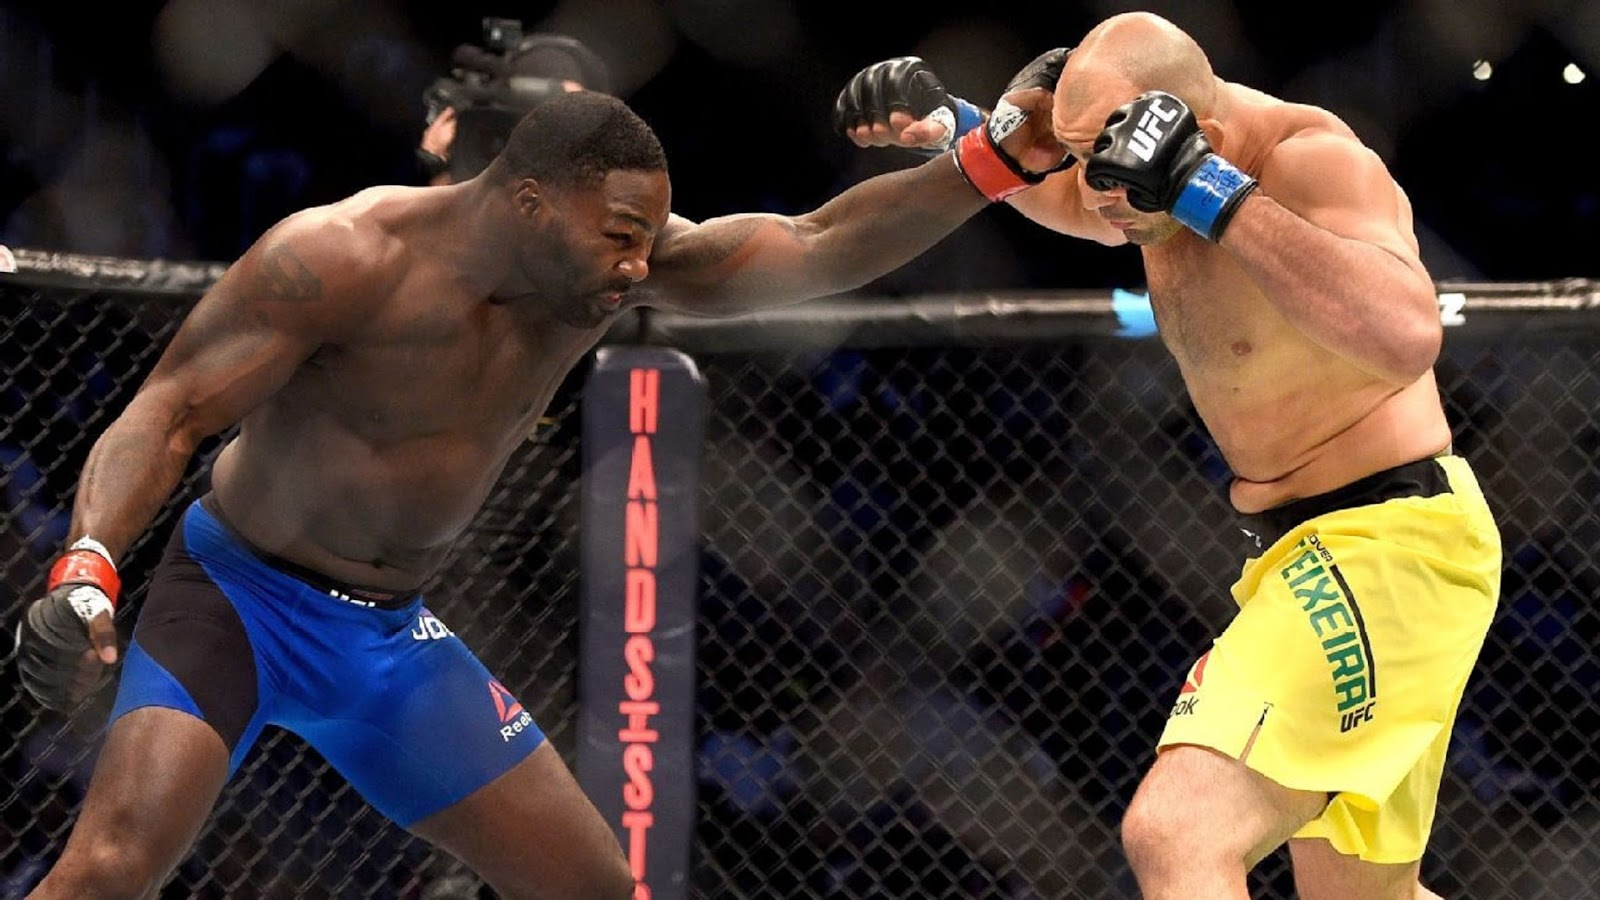 ANTHONY RUMBLE JOHNSON VS. GLOVER TEIXEIRA 6